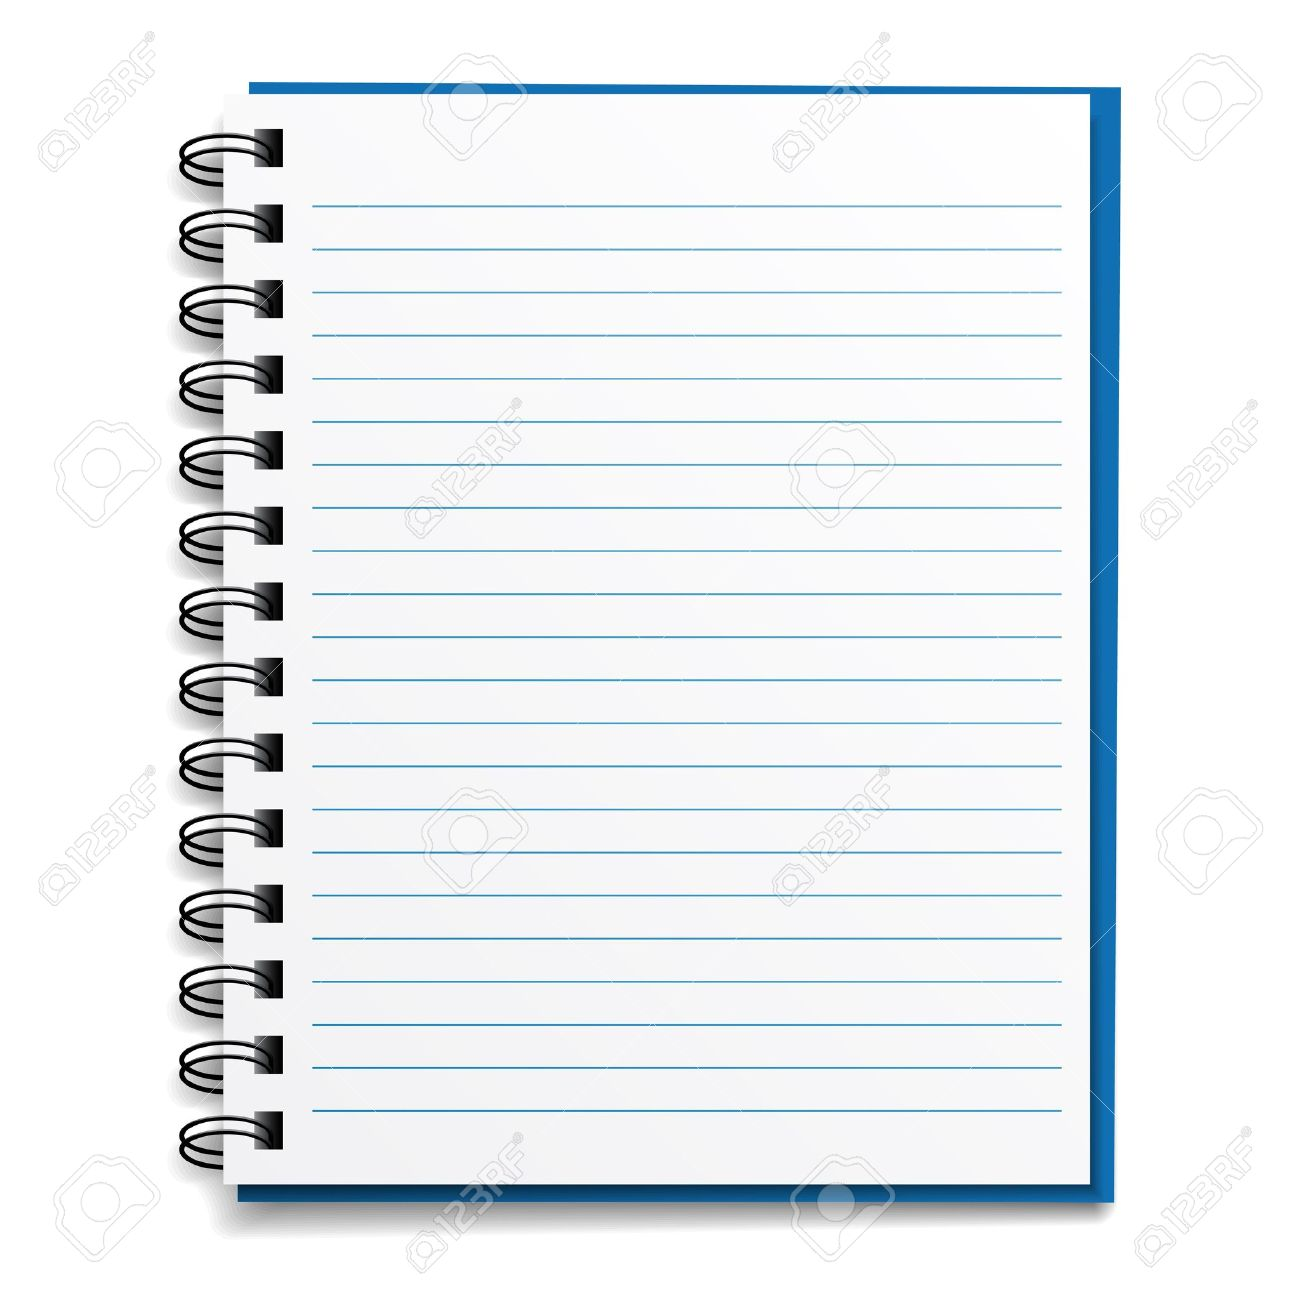 vector blank lined notebook royalty free cliparts, vectors, and